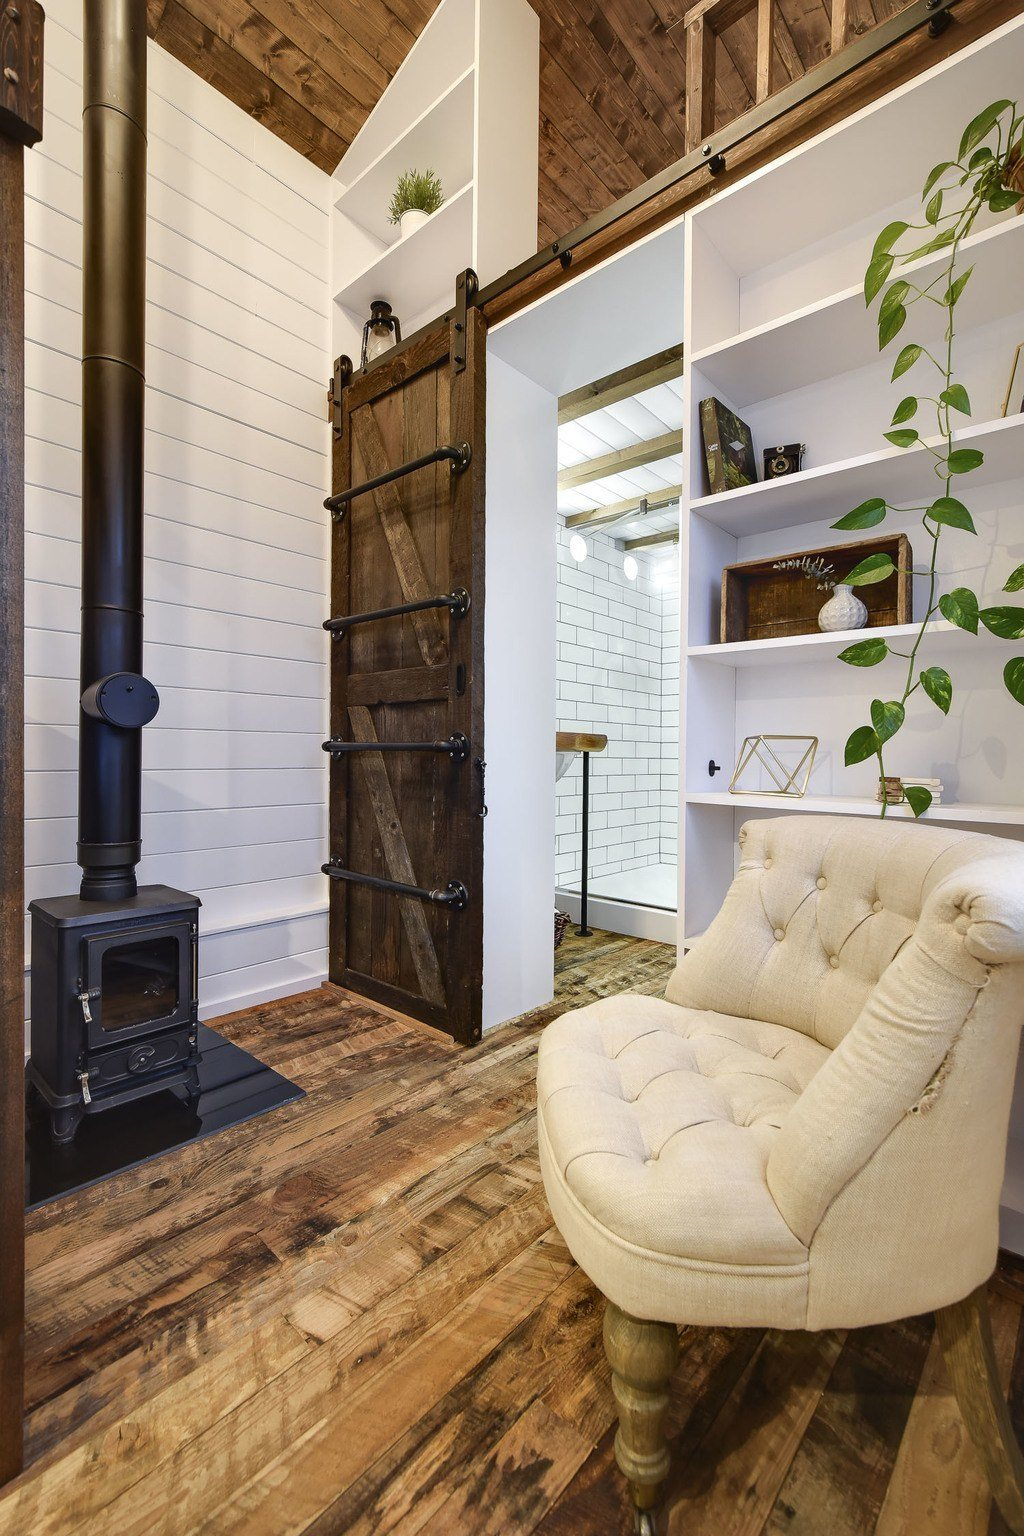 Rustic Loft Tiny House Swoon - rustic tiny house ideas